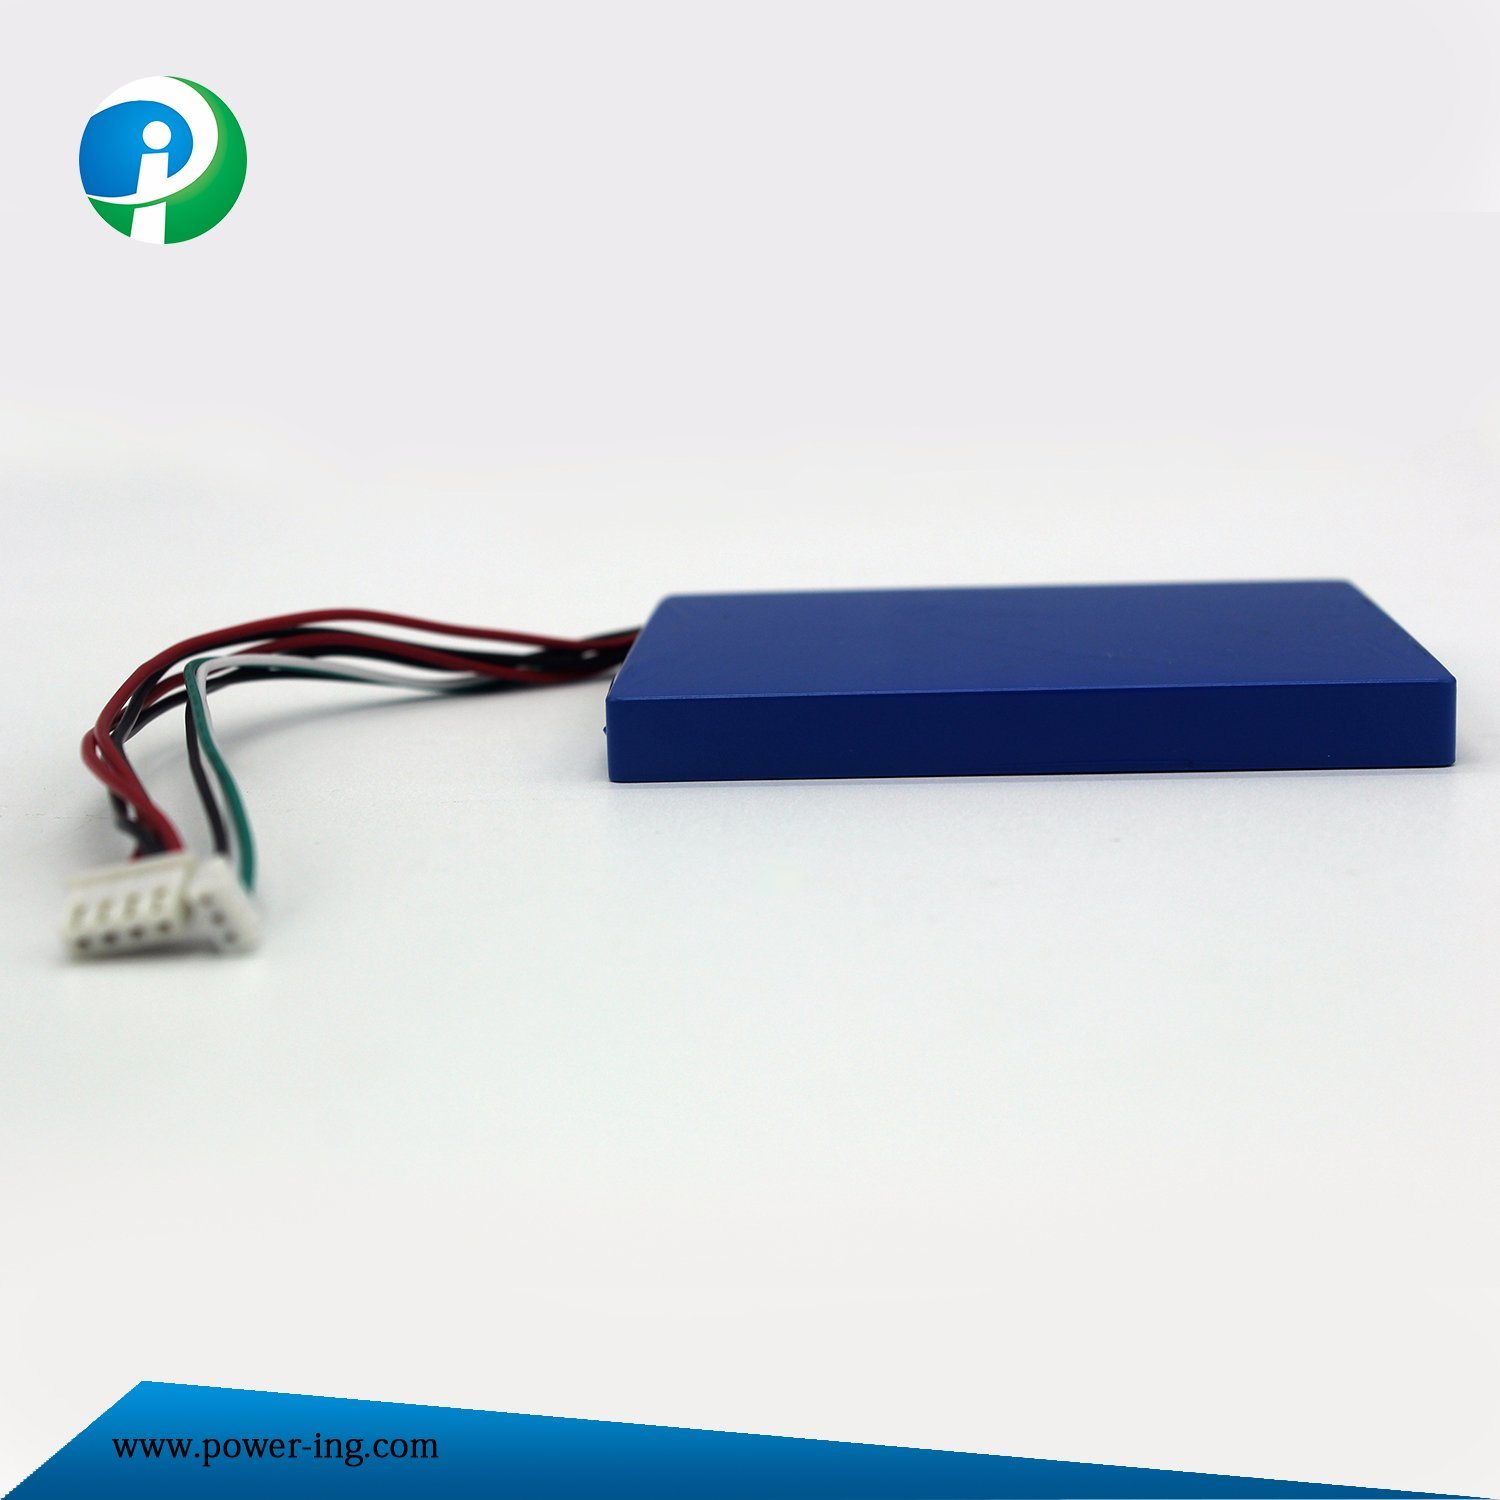 2017 Customized 5V Polymer Li-ion Battery for E-Equipment